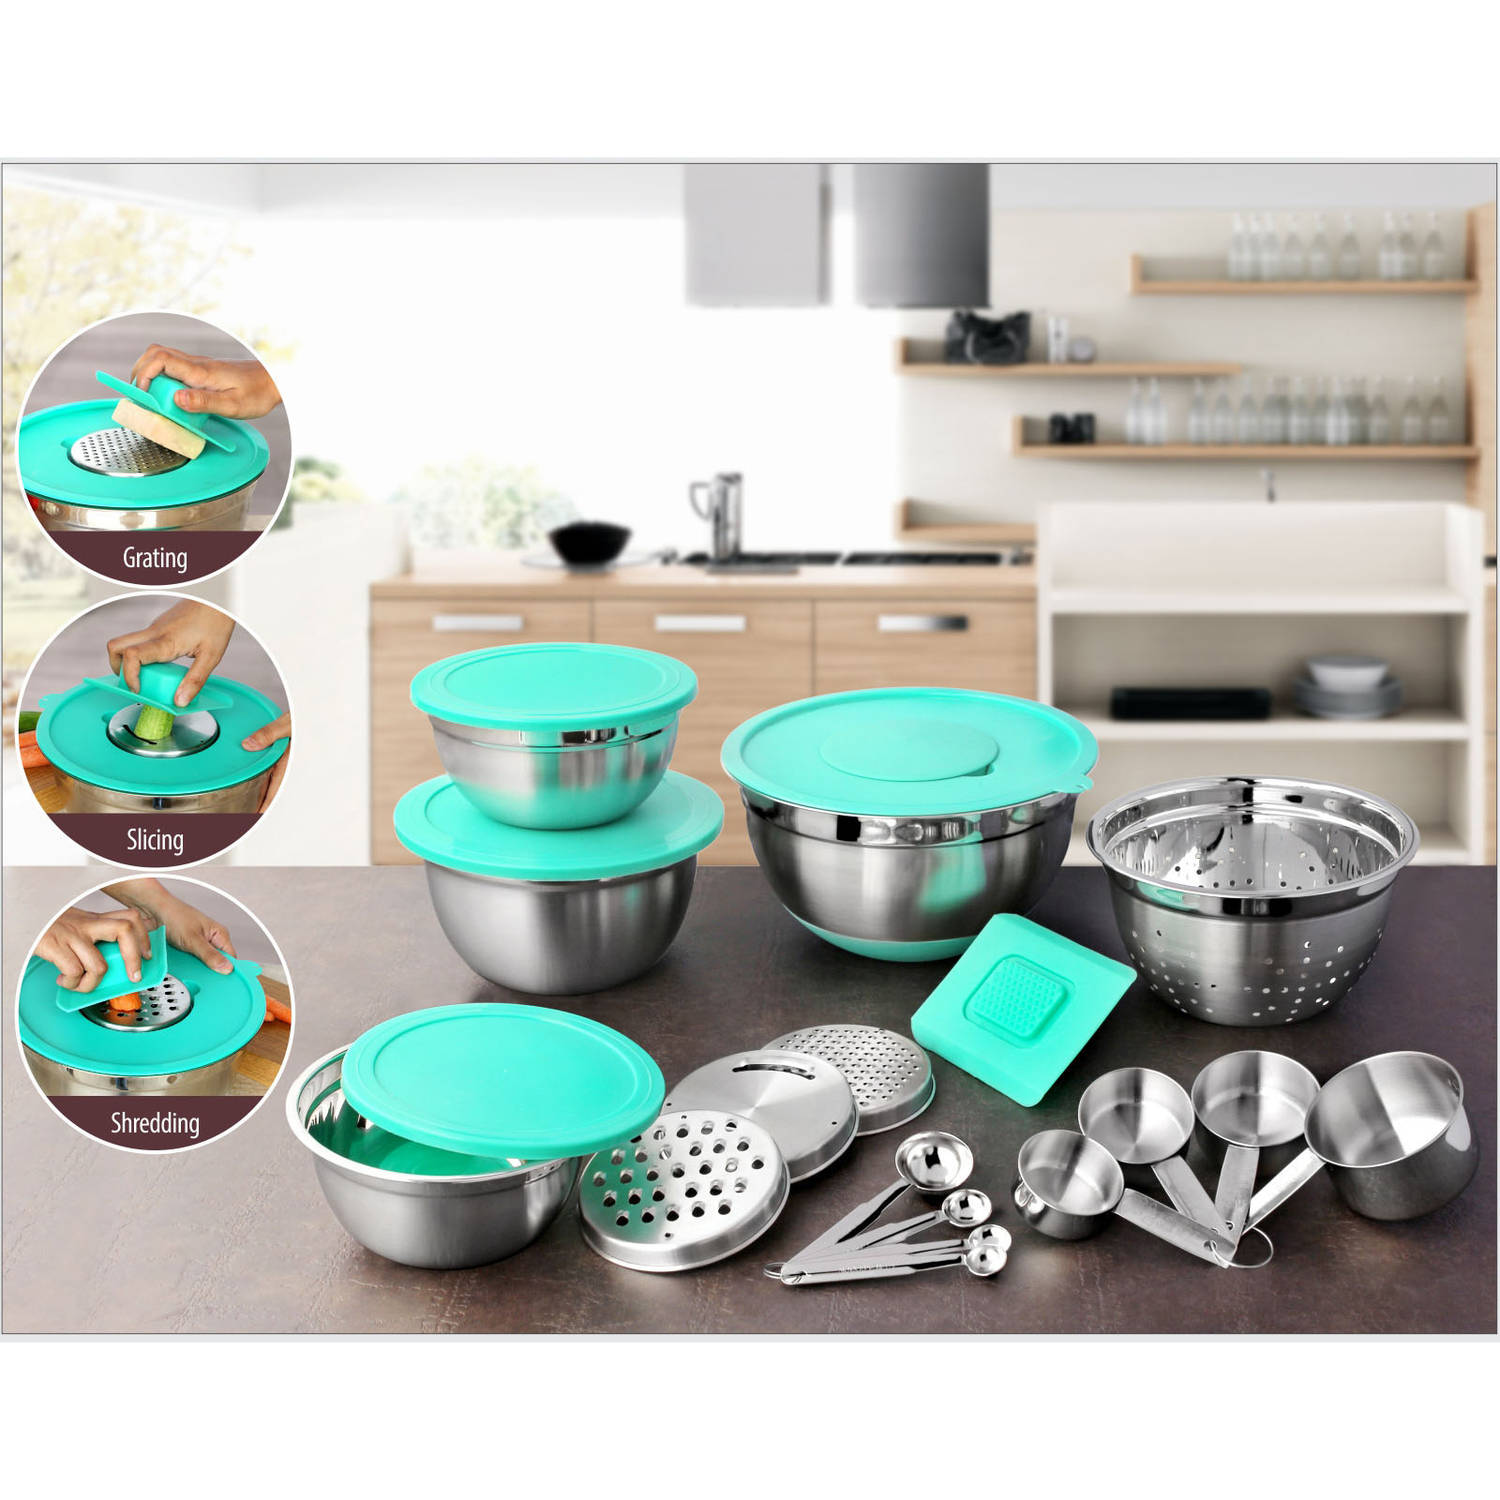 Better Homes and Garden 21-Piece Prep and Store Kitchen Set ...